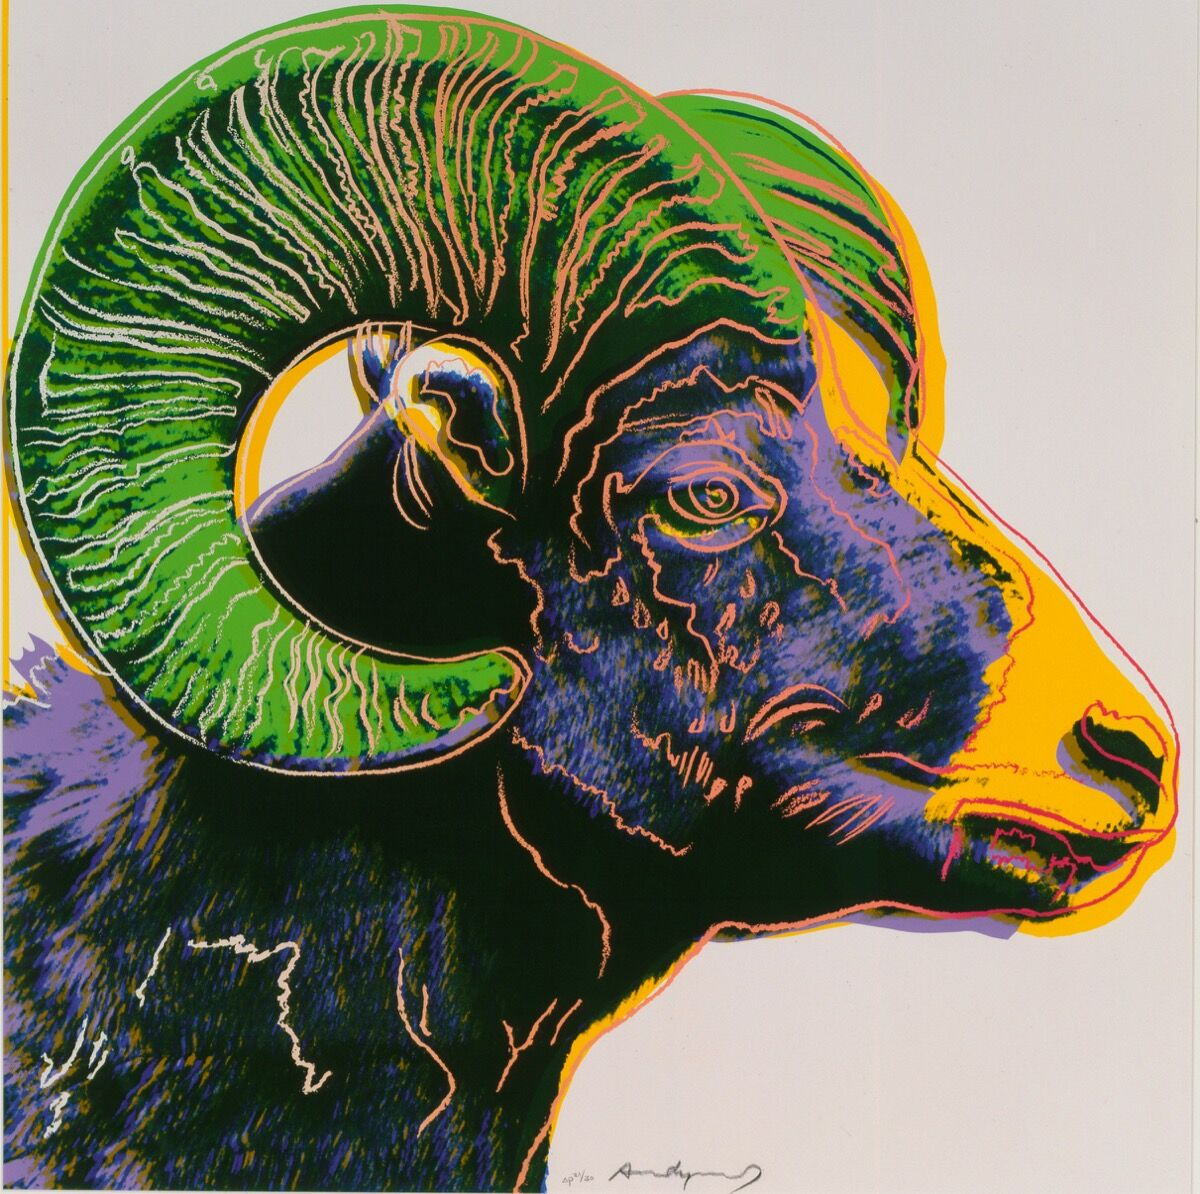 Andy Warhol, Endangered Species: Bighorn Ram, 1983. Artwork © 2019 The Andy Warhol Foundation for the Visual Arts, Inc. / Licensed by Artists Rights Society (ARS), New York. Courtesy of the Booth Museum.